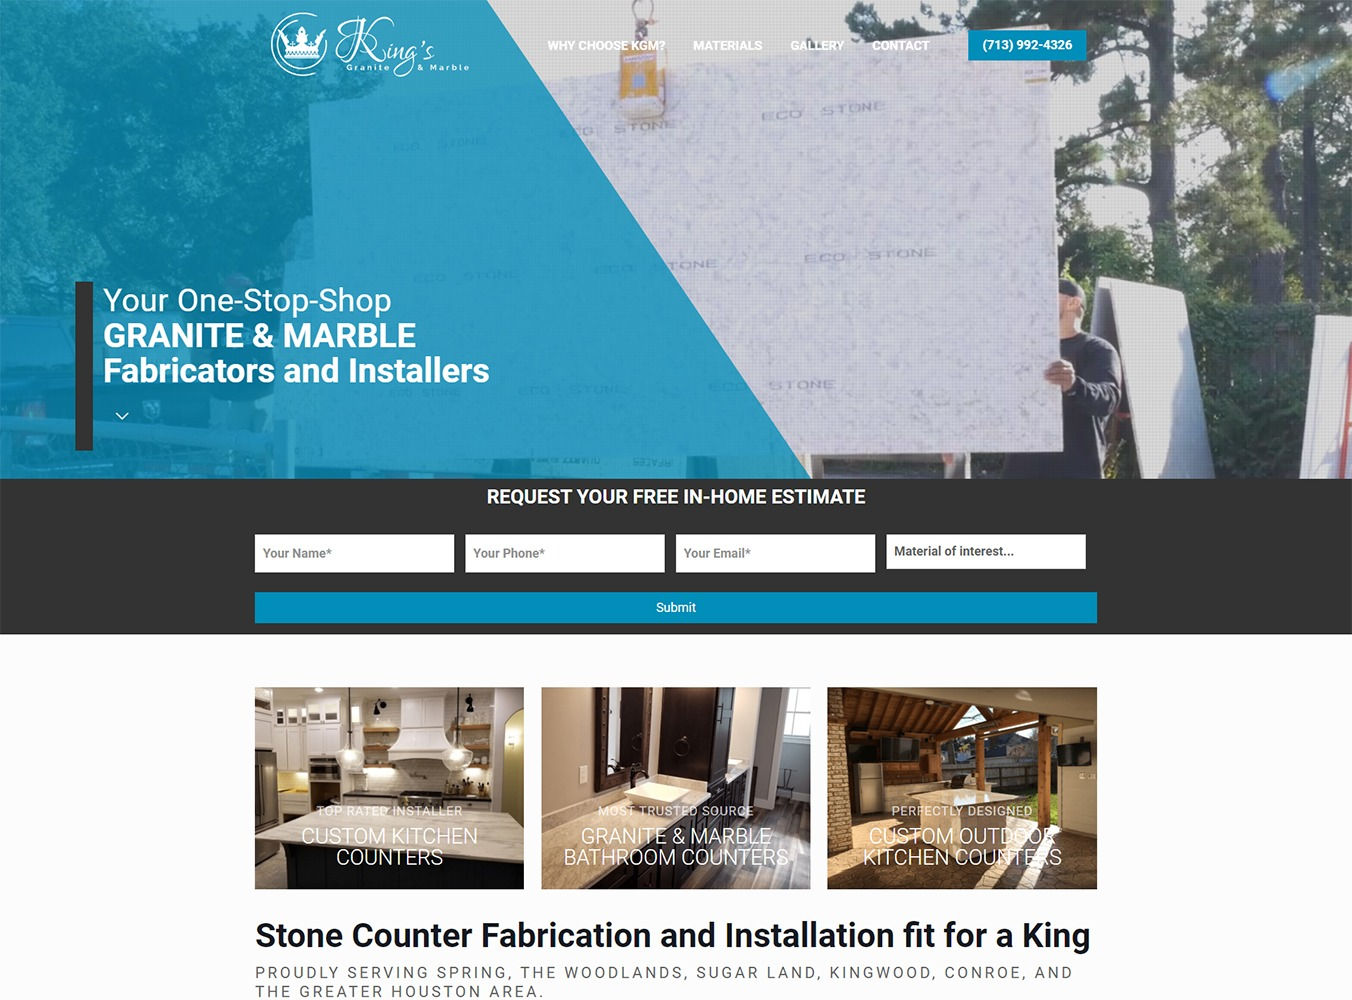 King's Granite & Marble Website Development by Visibly Connected